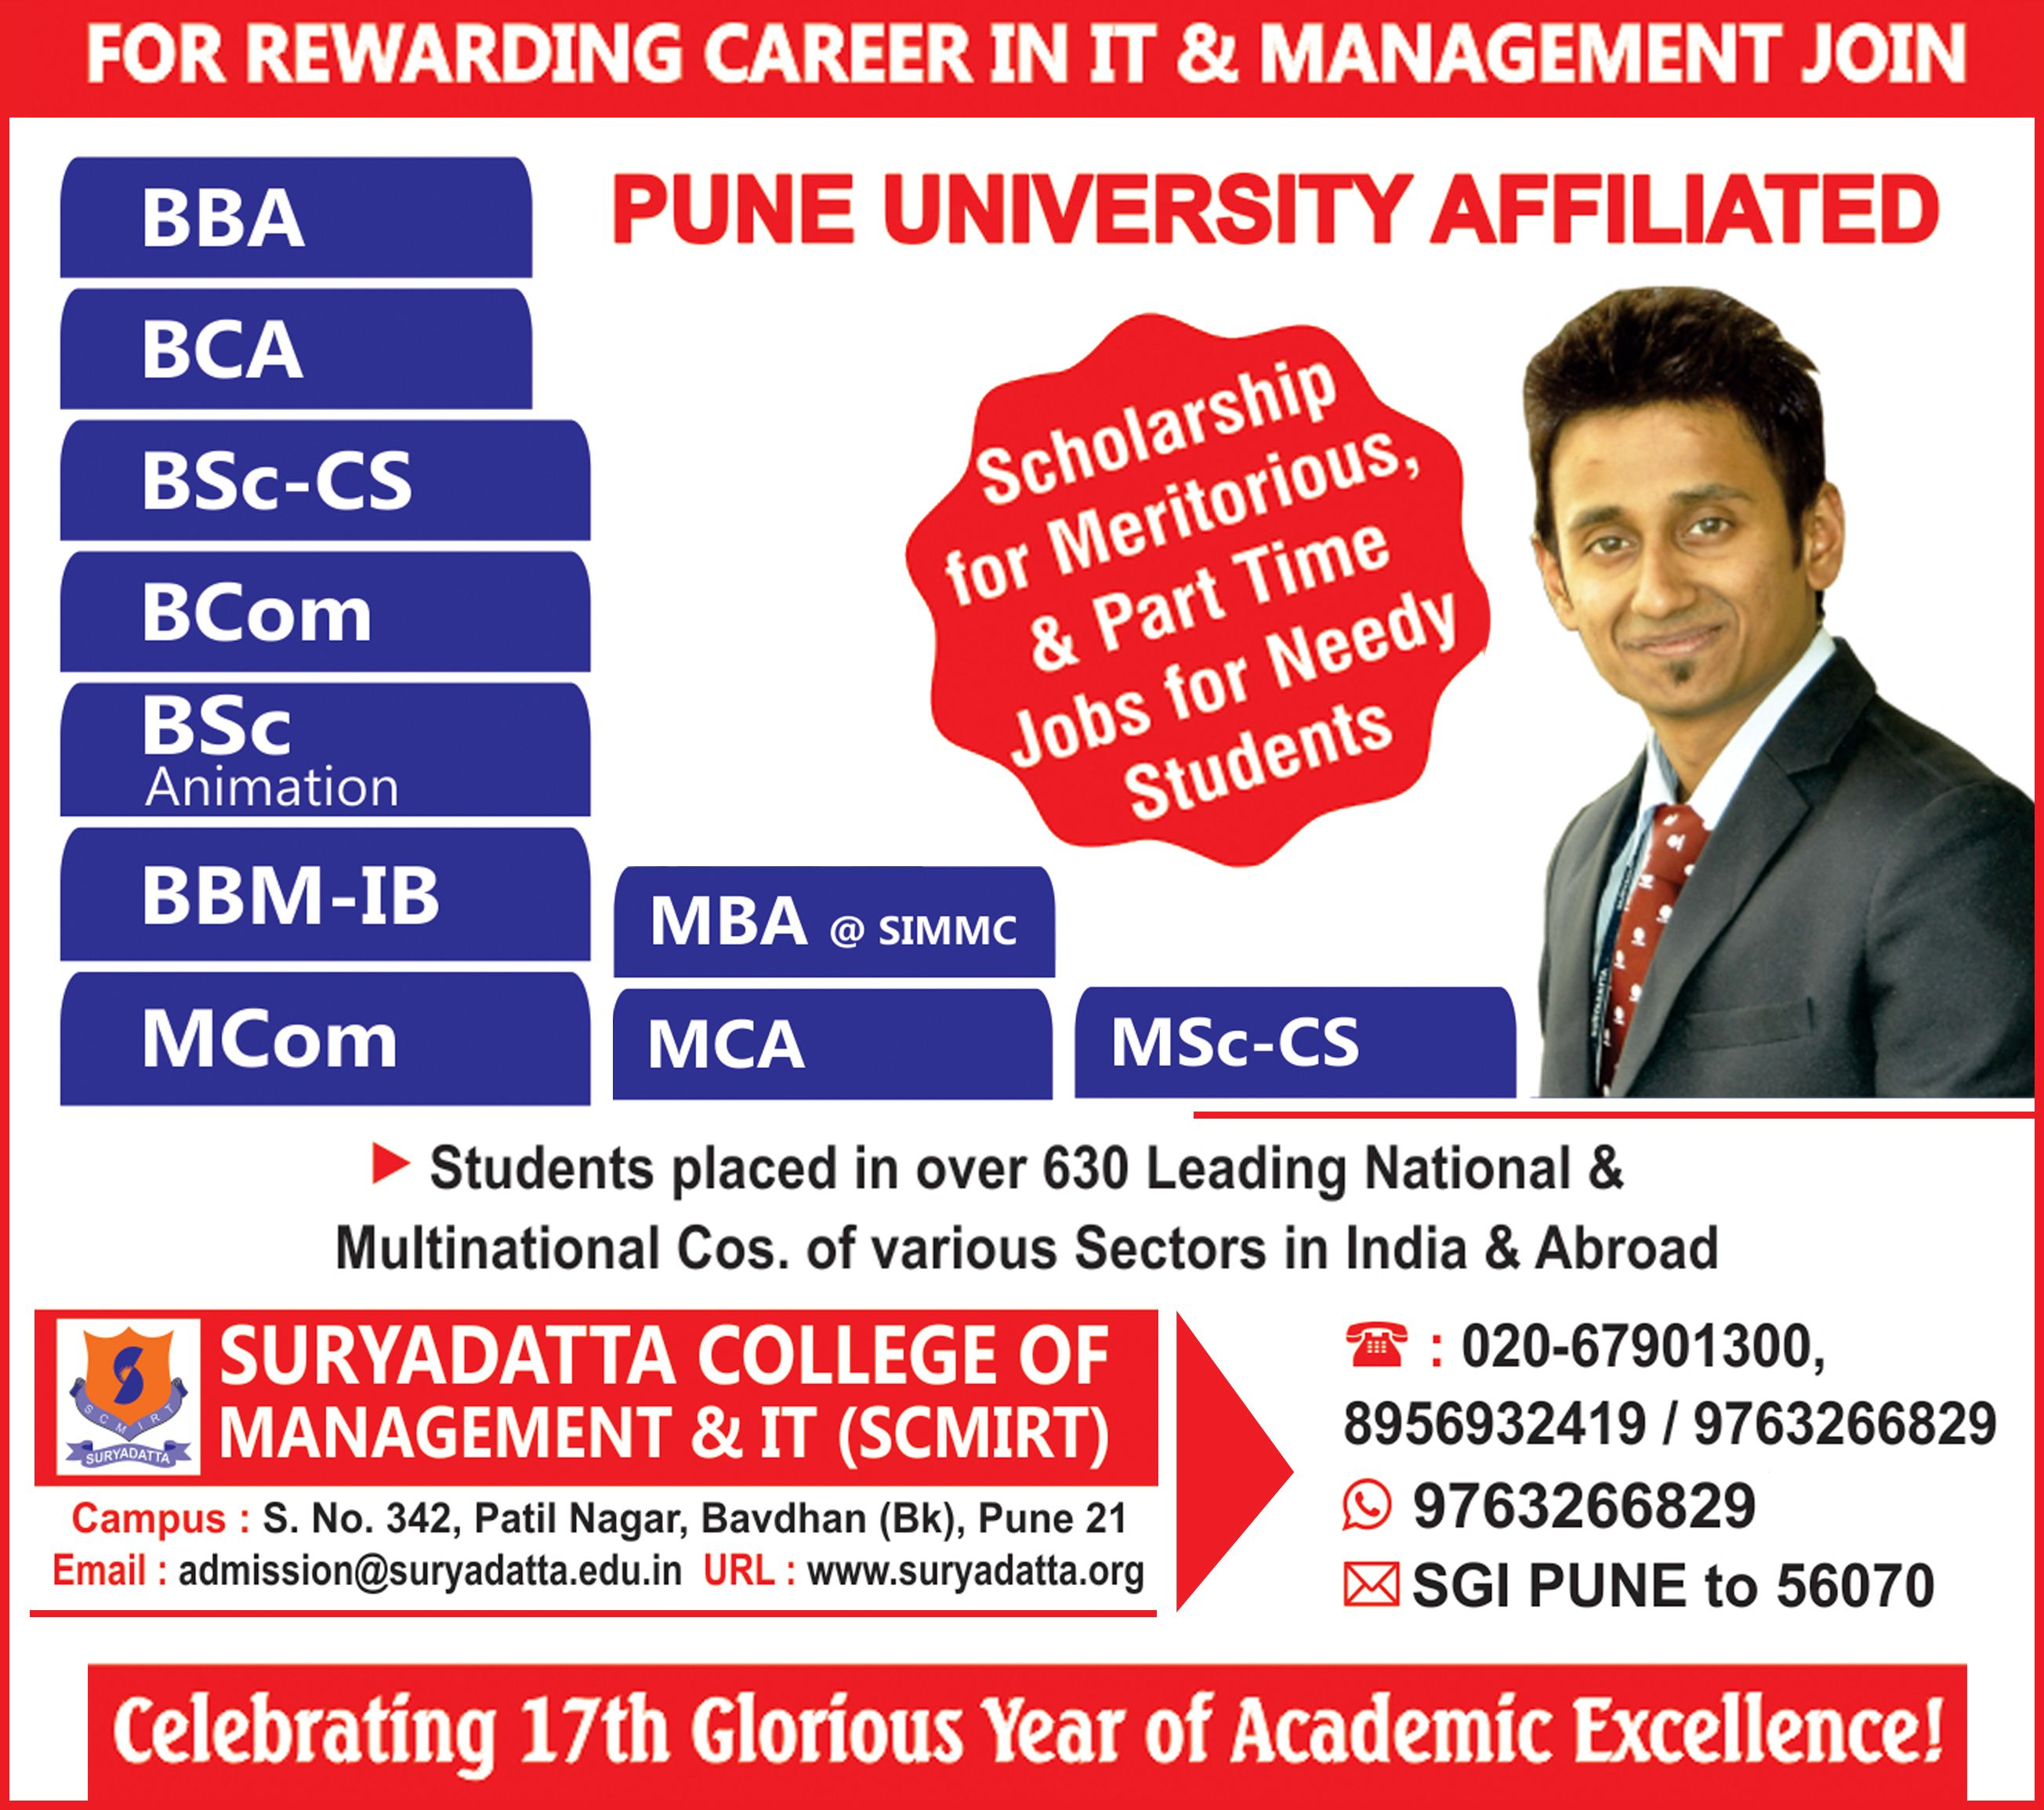 suryadatta college of hotel management schmtt is now offering offering admissions in suryadatta college of management it scmirt for a better career